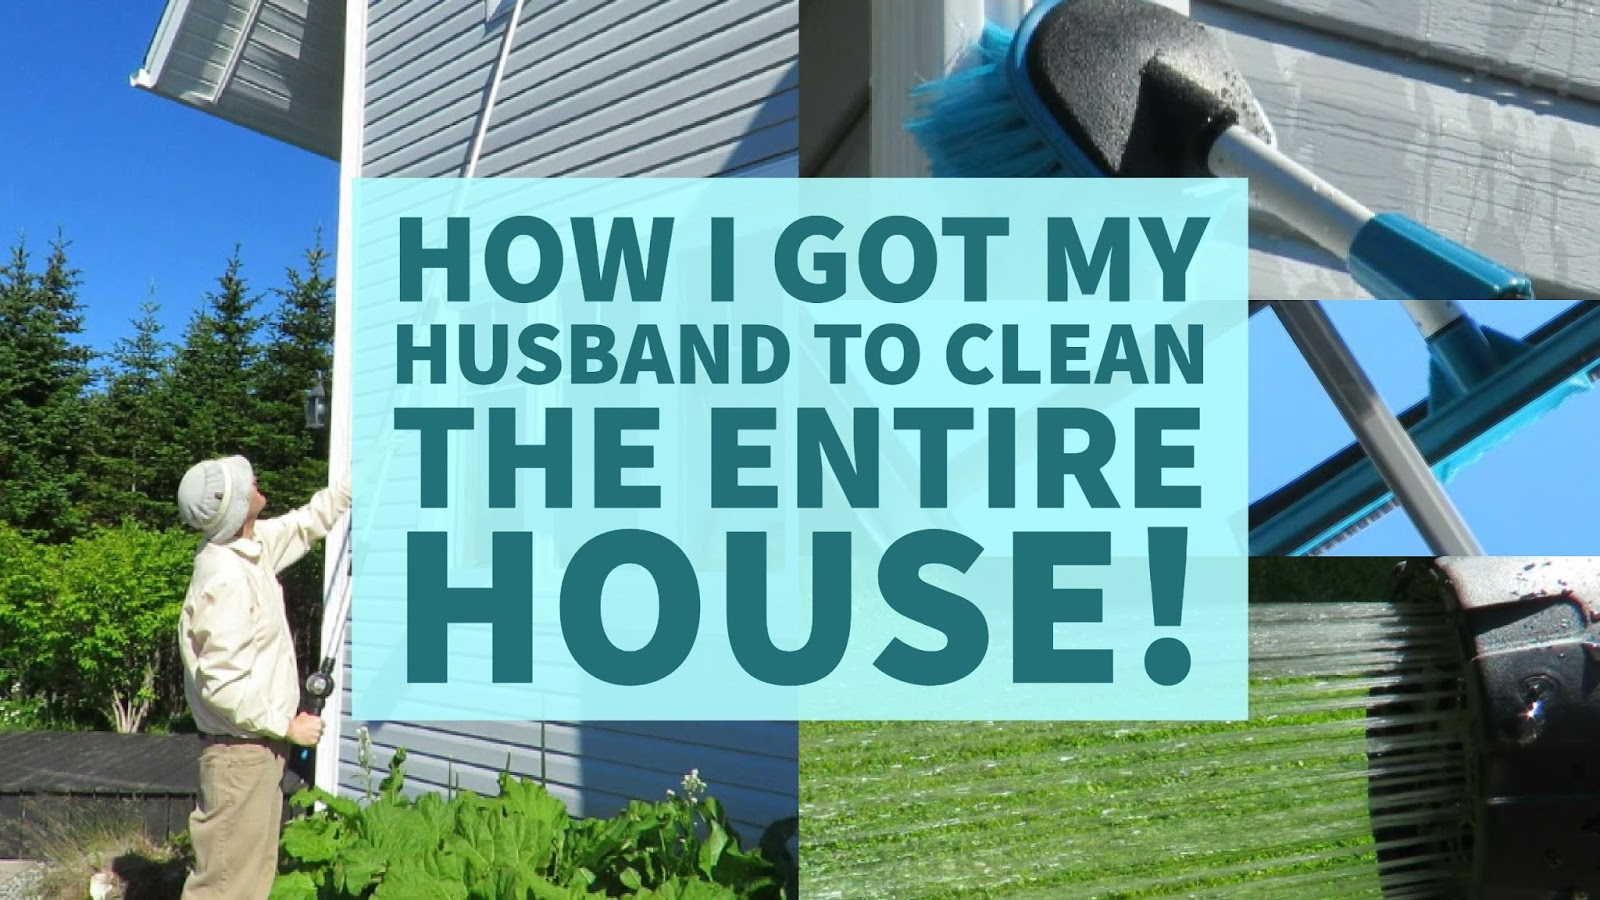 How I Got My Husband To Clean The Entire House